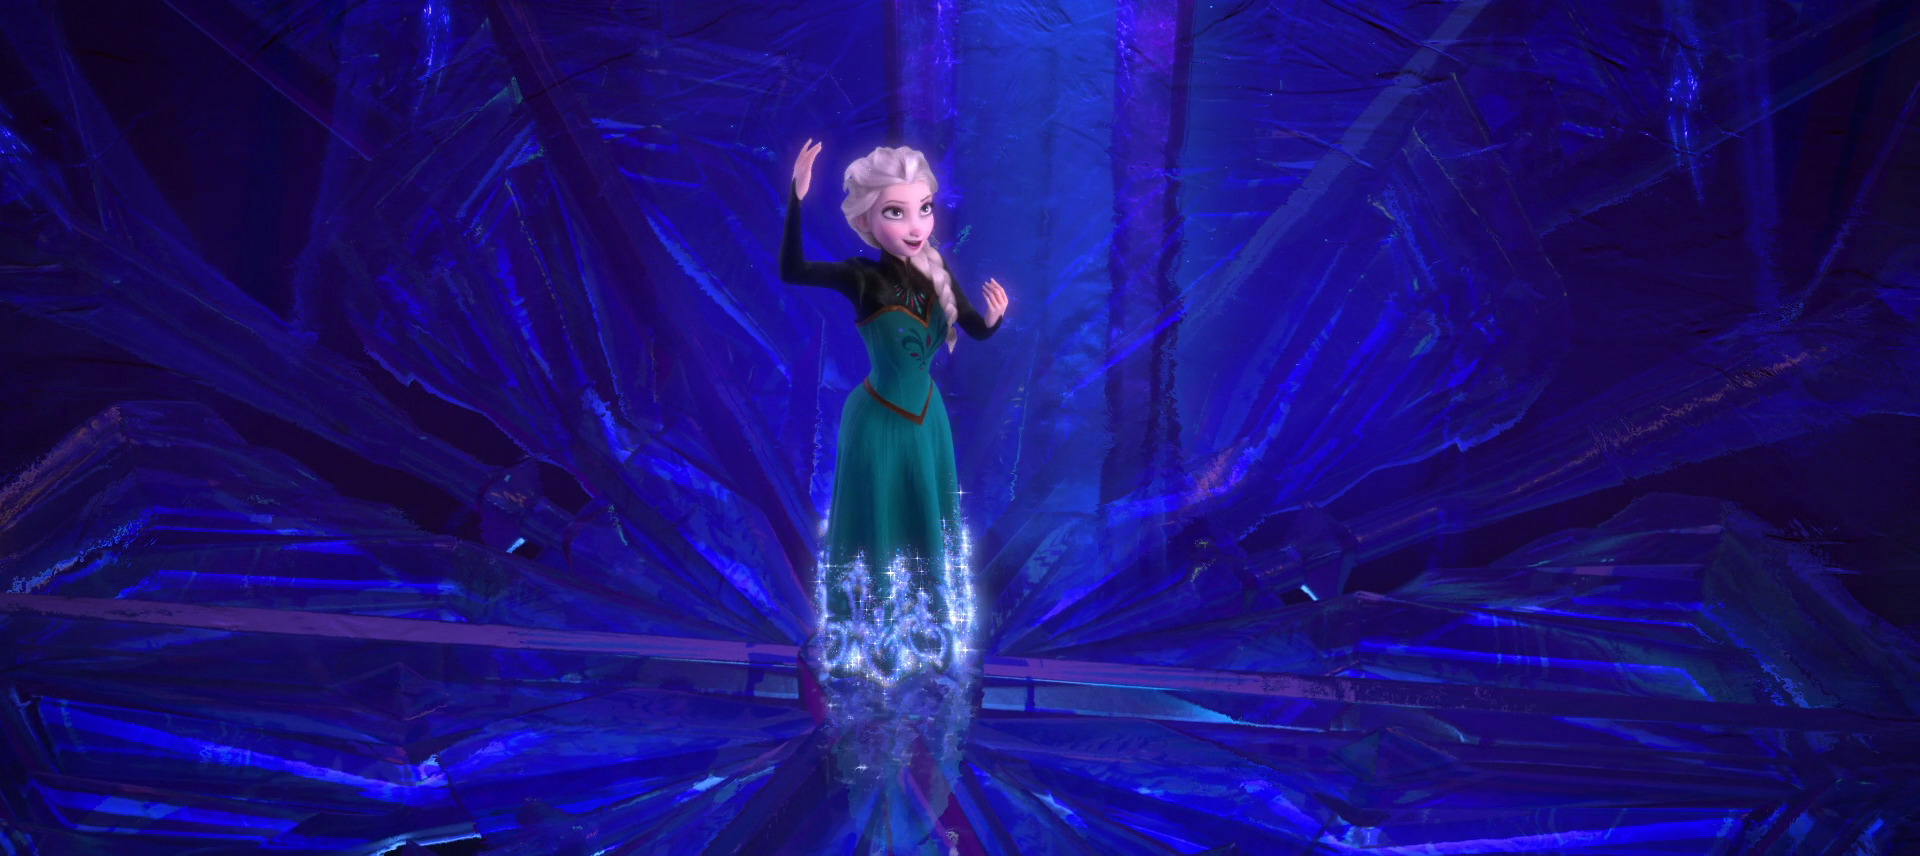 song let it go